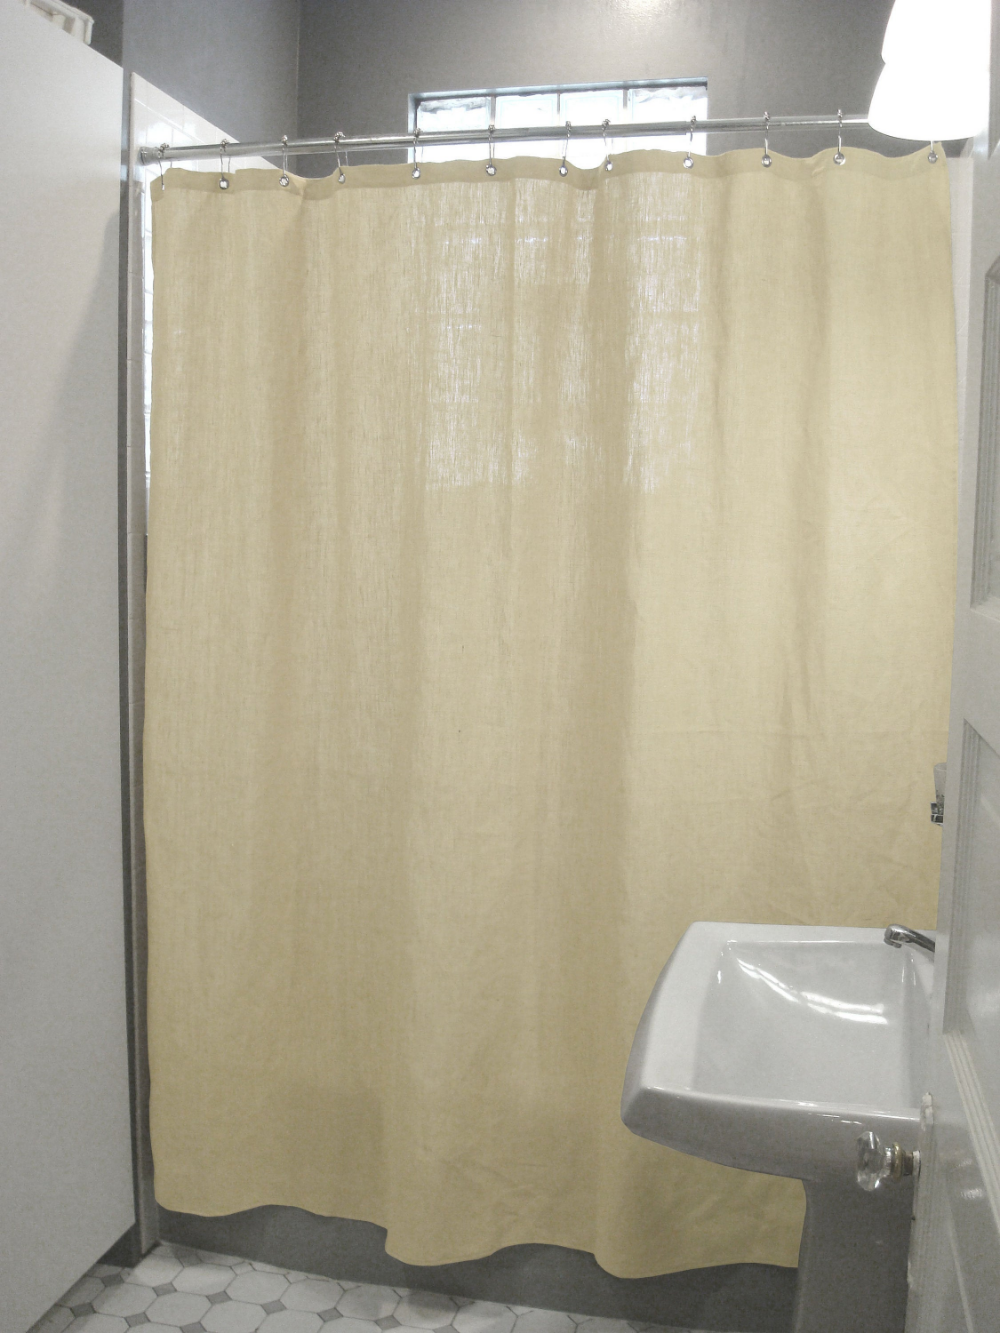 Hemp Shower Curtain Use With Or Without Liner Made In Usa